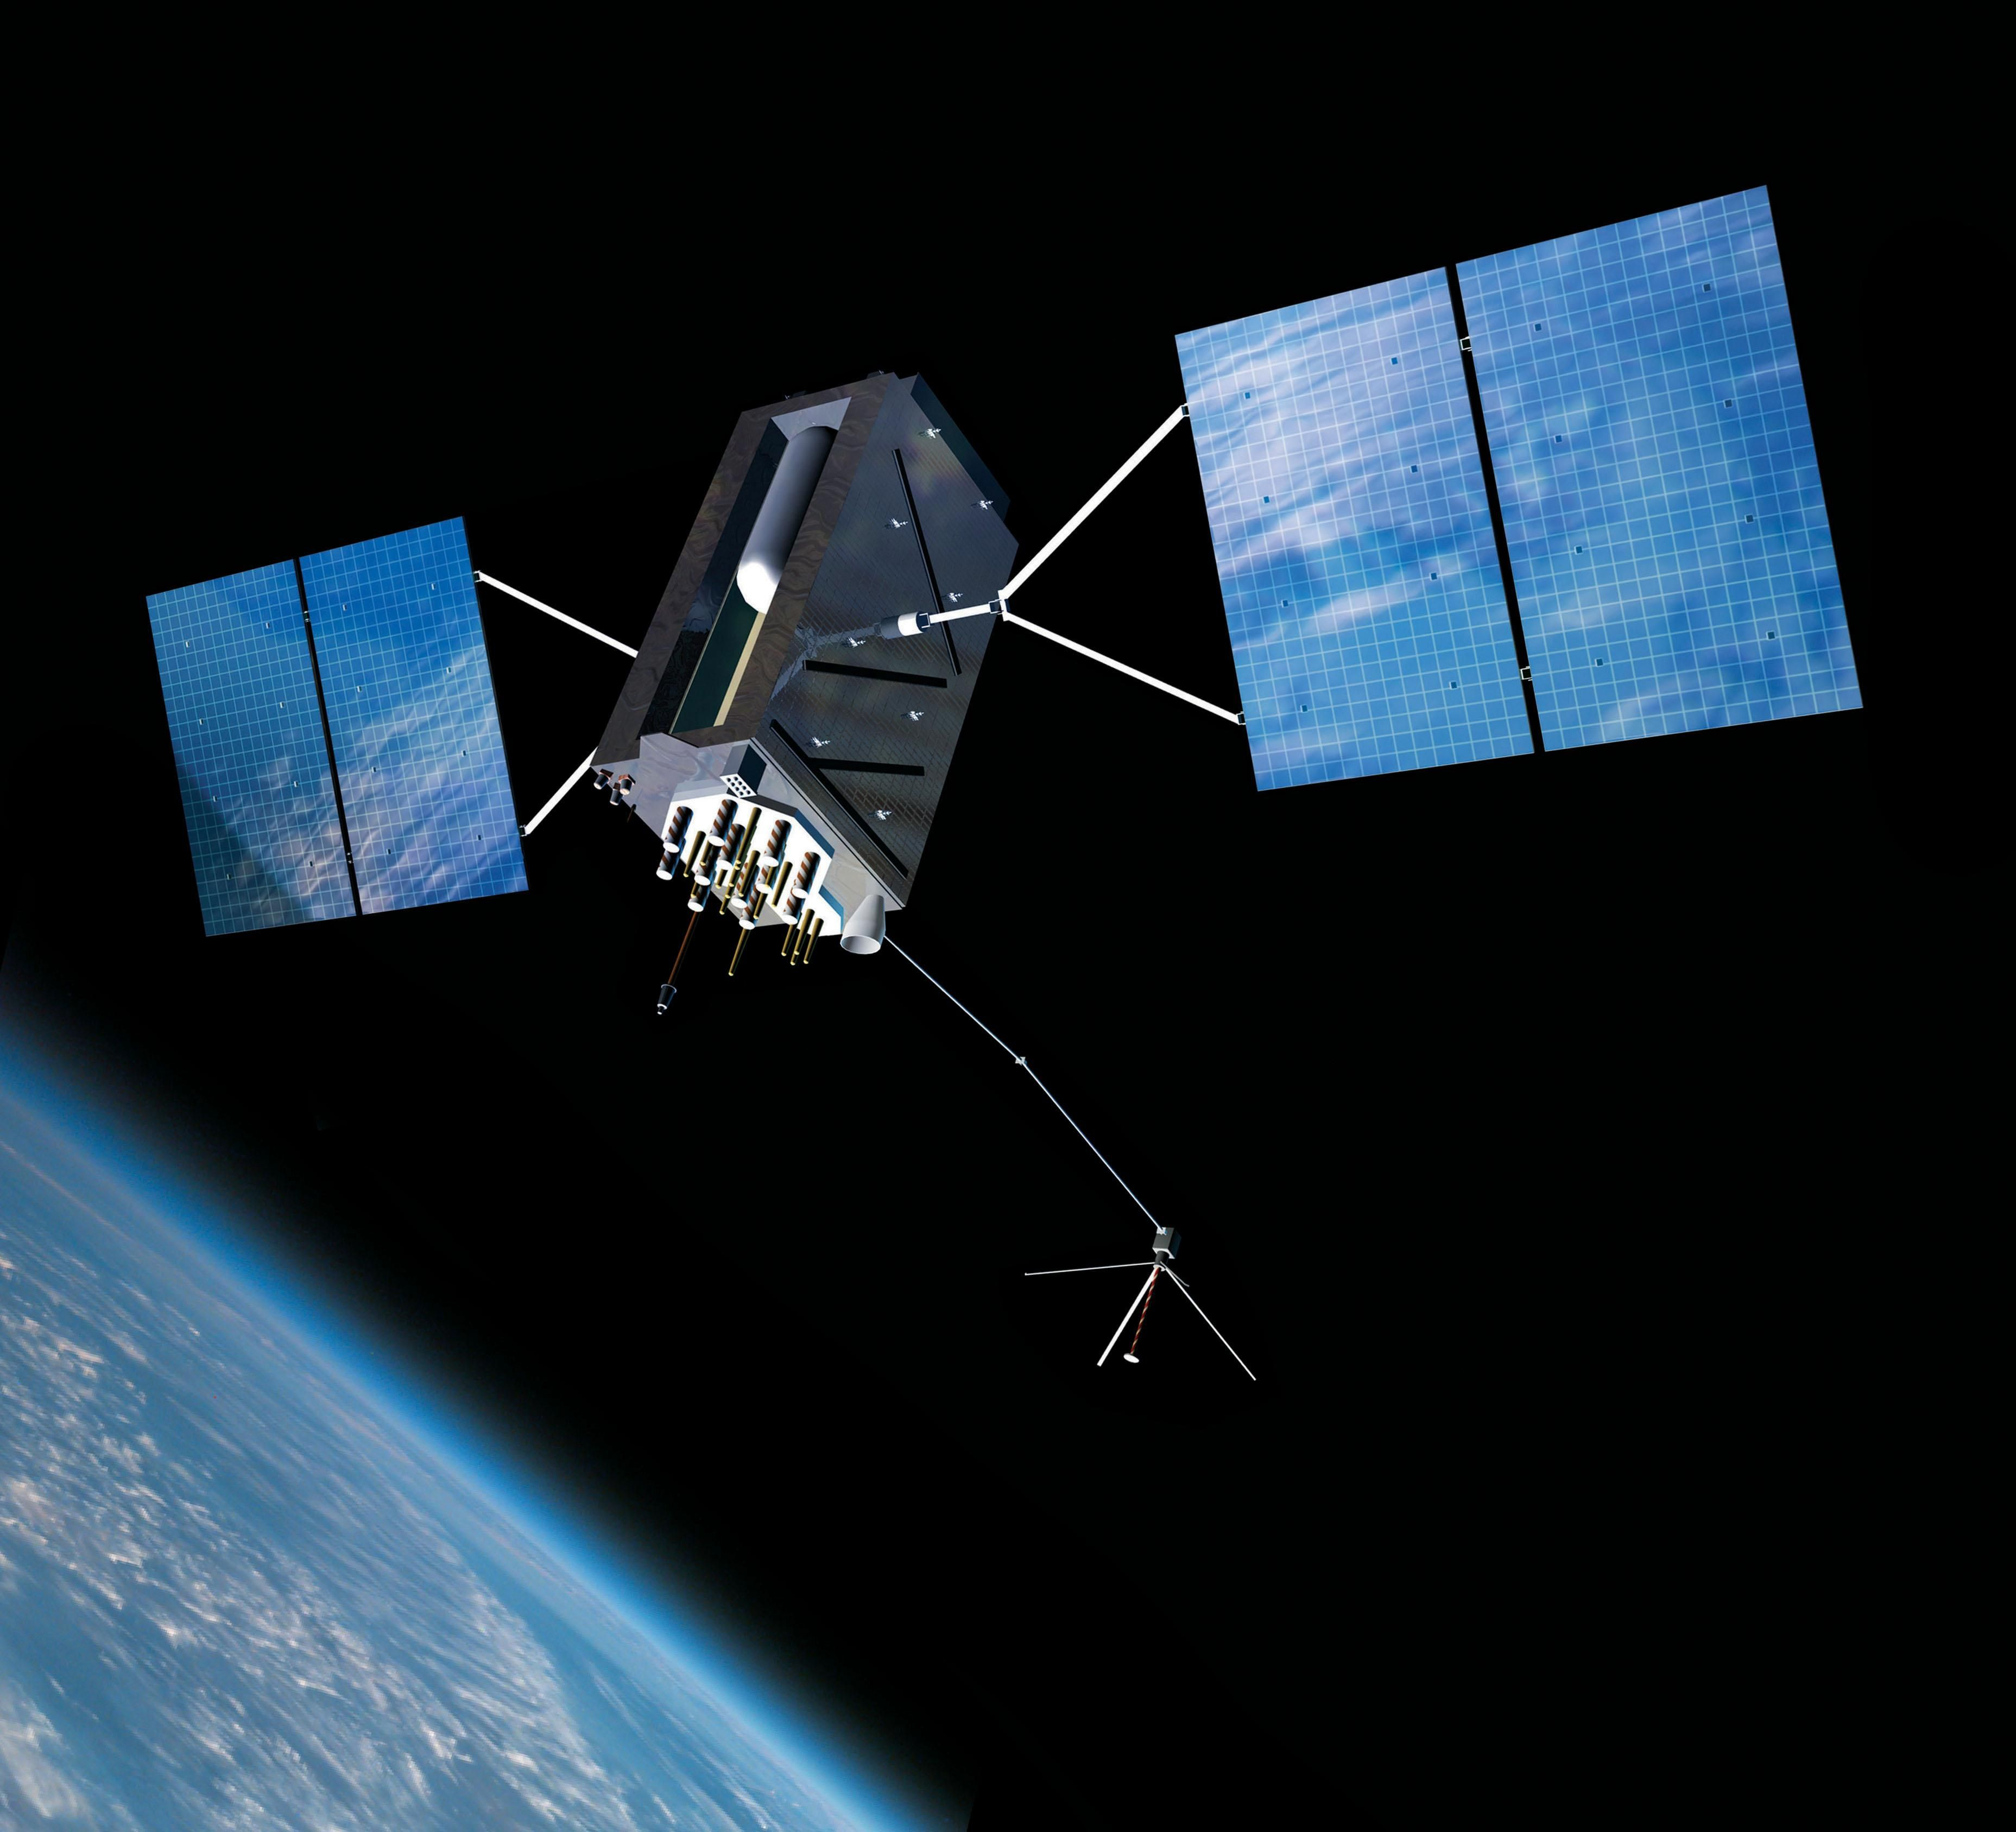 The Air Force Plans to Buy New Jam-Resistant GPS Satellites